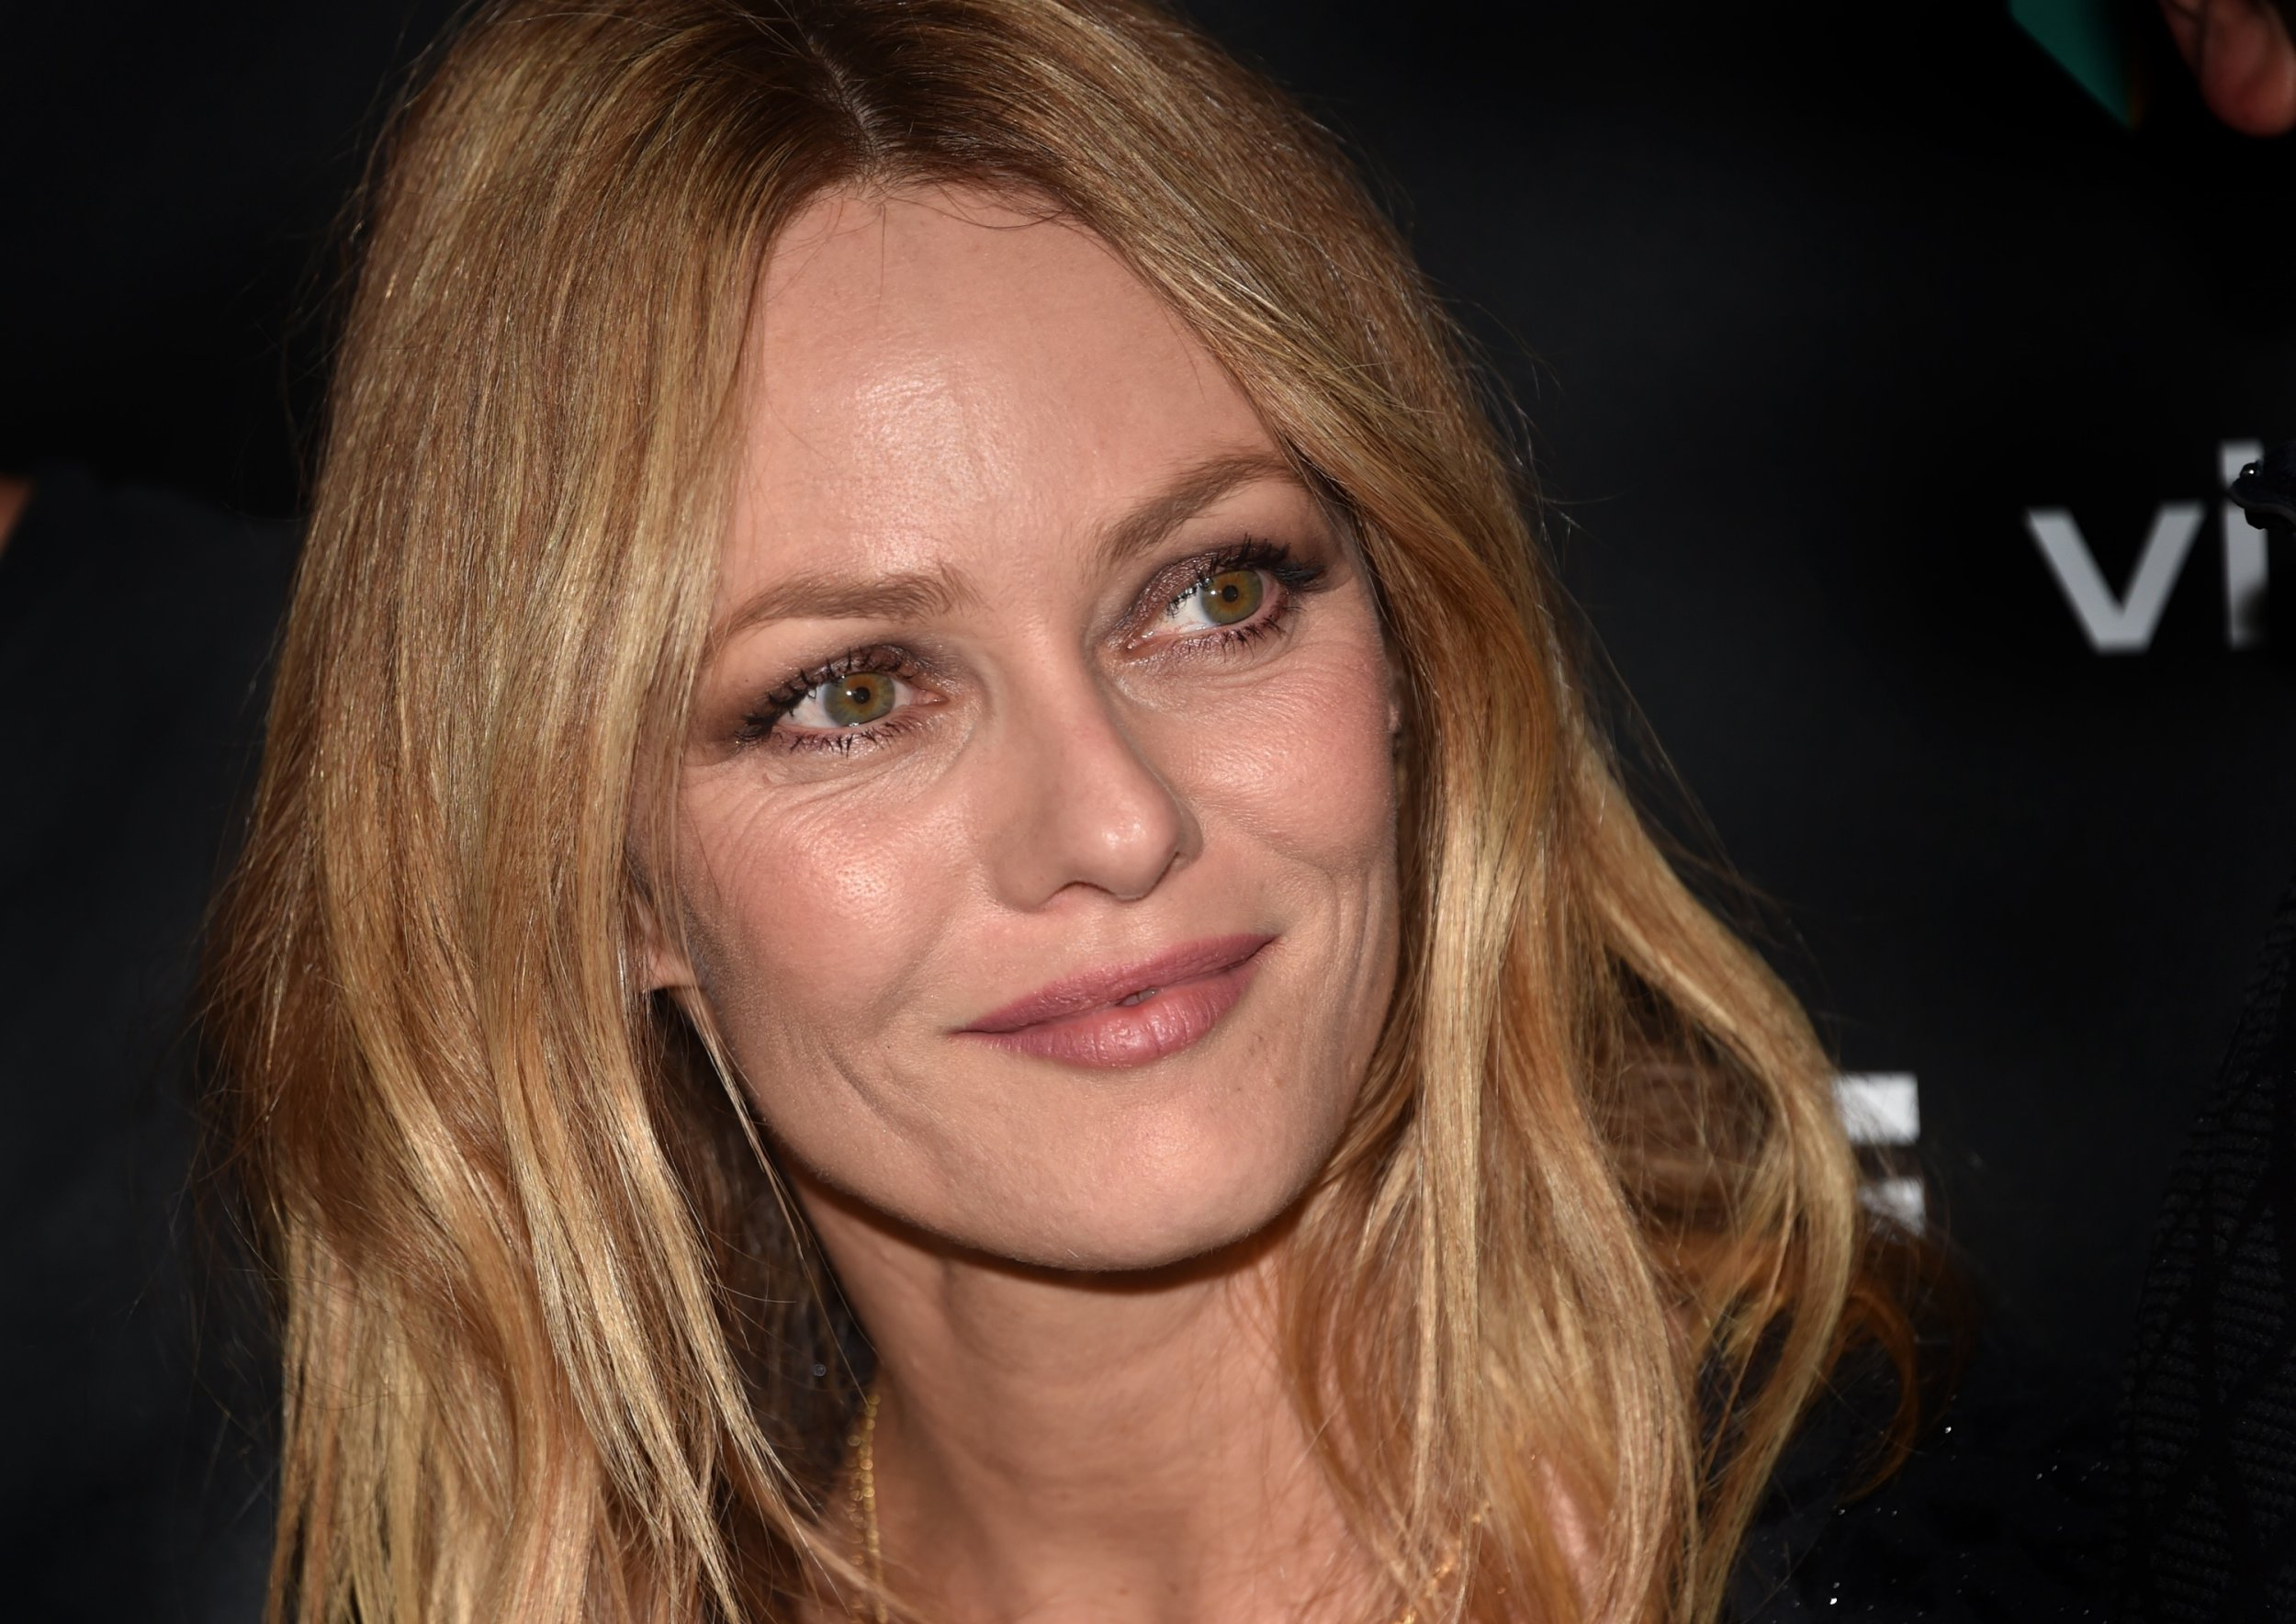 "BGUK_1266585 - ** RIGHTS: ONLY UNITED KINGDOM ** Paris, FRANCE - Celebrities at the ""Un couteau dans le coeur"" film premiere at la cinematheque on June 18, 2018 in Paris, France. Pictured: Vanessa Paradis BACKGRID UK 18 JUNE 2018 BYLINE MUST READ: BEST IMAGE / BACKGRID UK: +44 208 344 2007 / uksales@backgrid.com USA: +1 310 798 9111 / usasales@backgrid.com *UK Clients - Pictures Containing Children Please Pixelate Face Prior To Publication*"